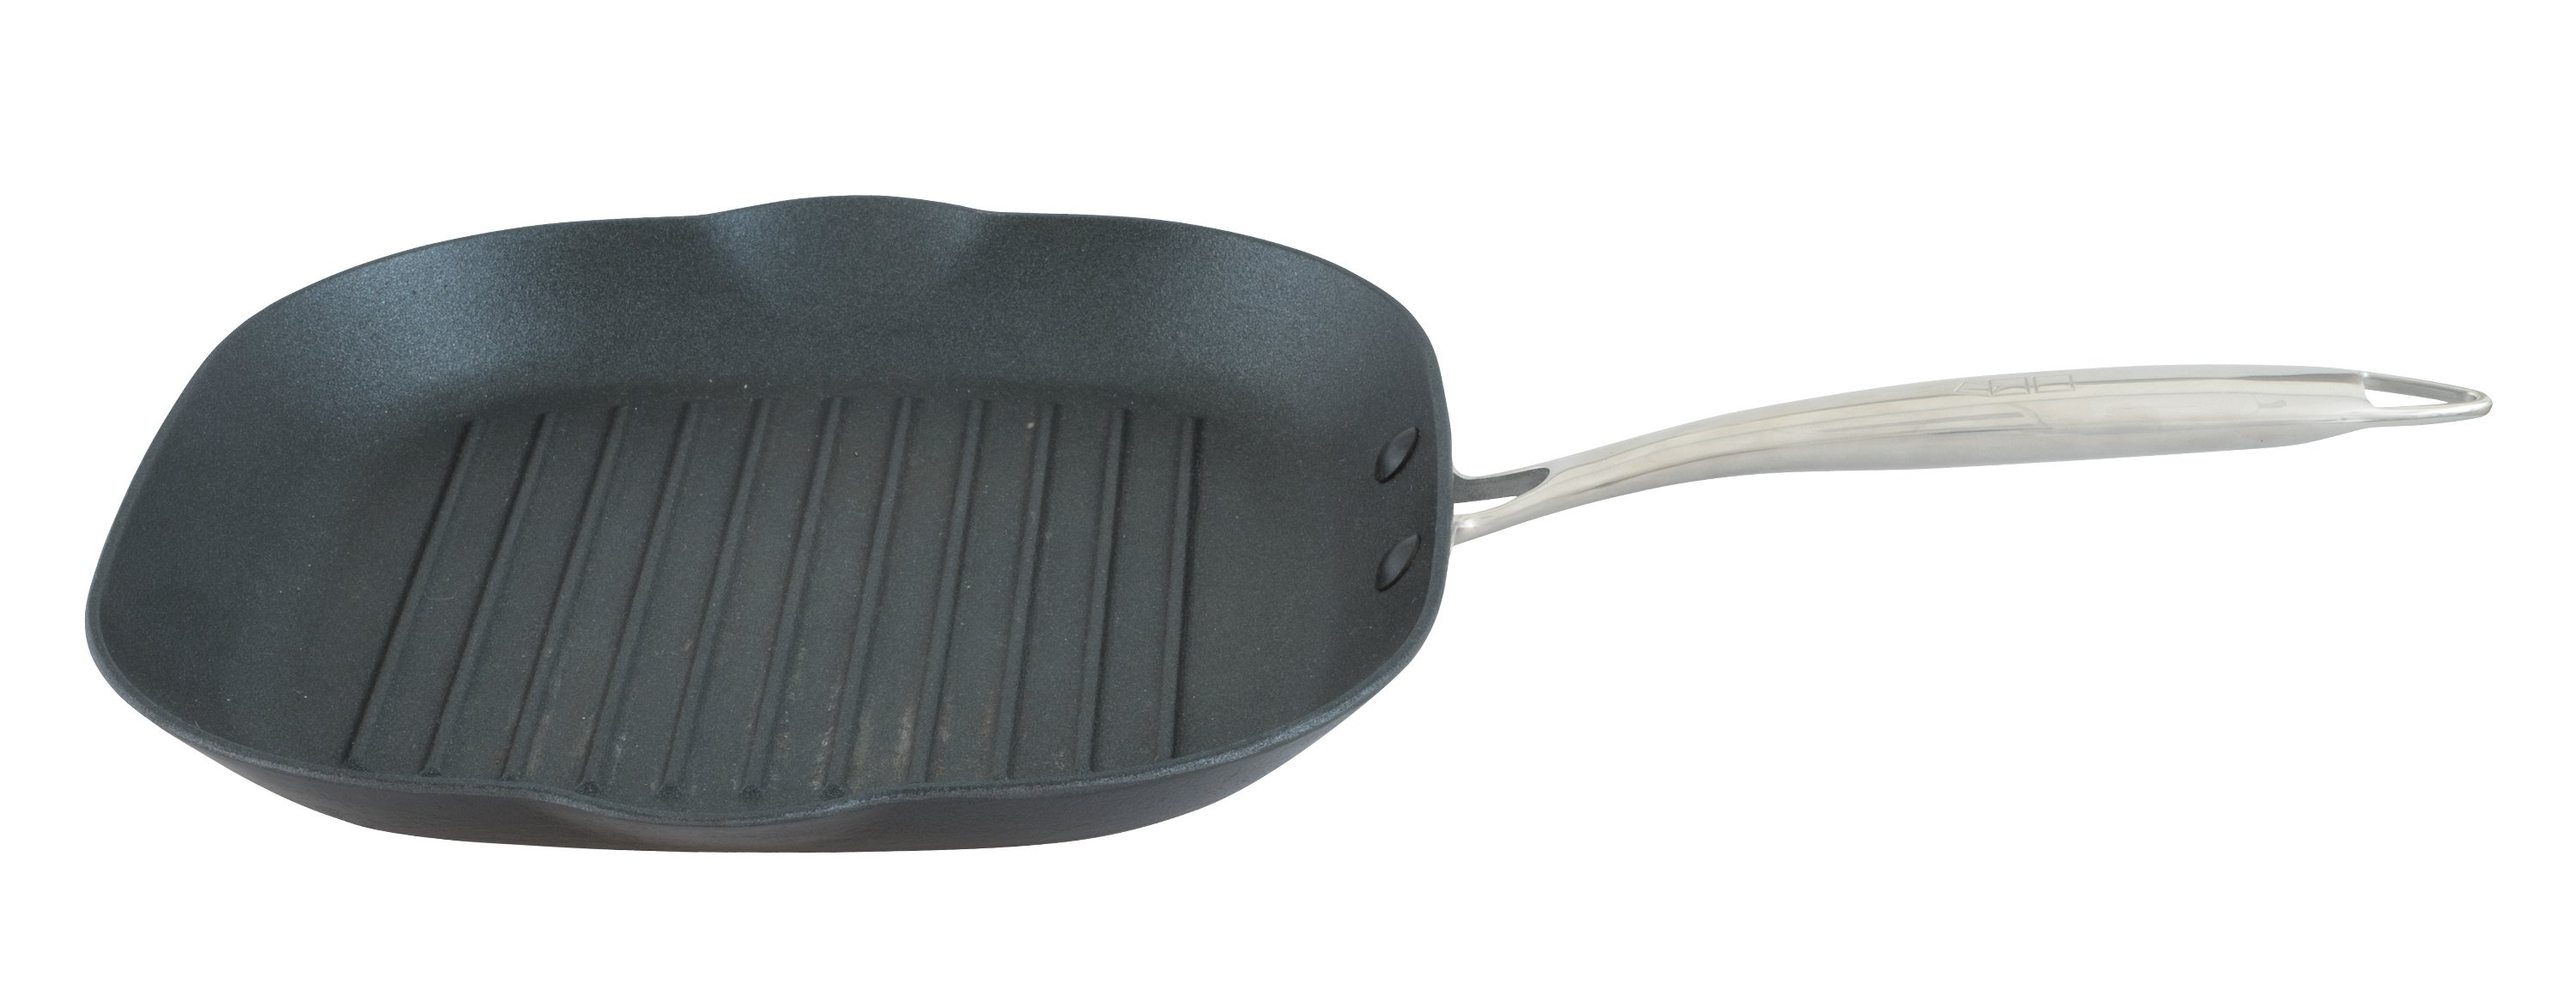 Point-Virgule Pan-�-moi gietijzeren grillpan